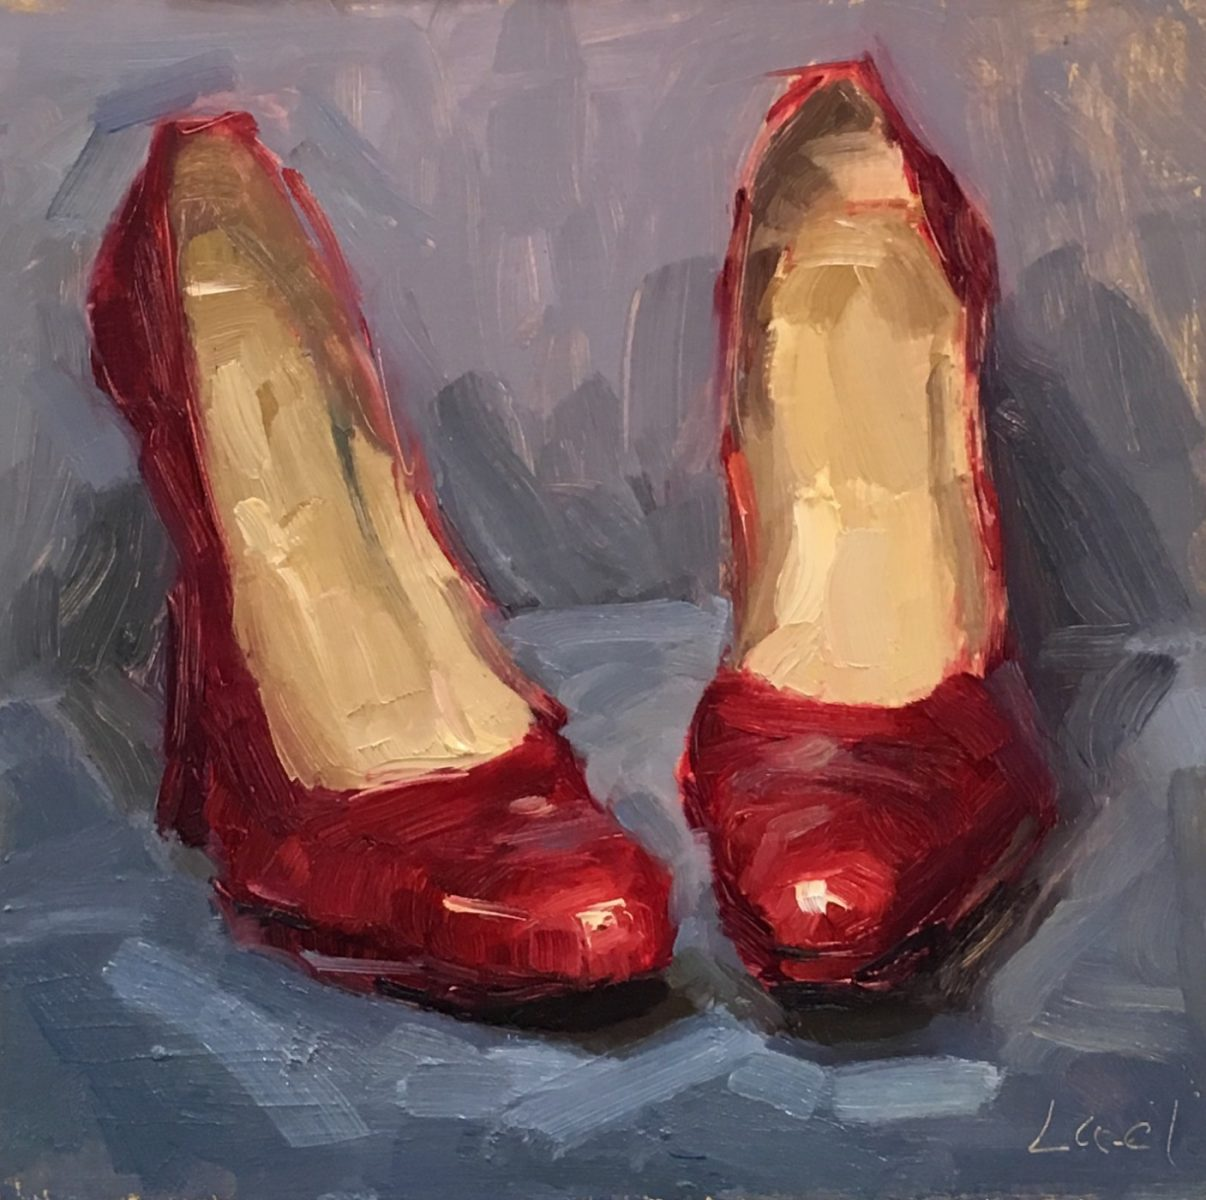 Toe to Toe painting by Lael Weyenberg